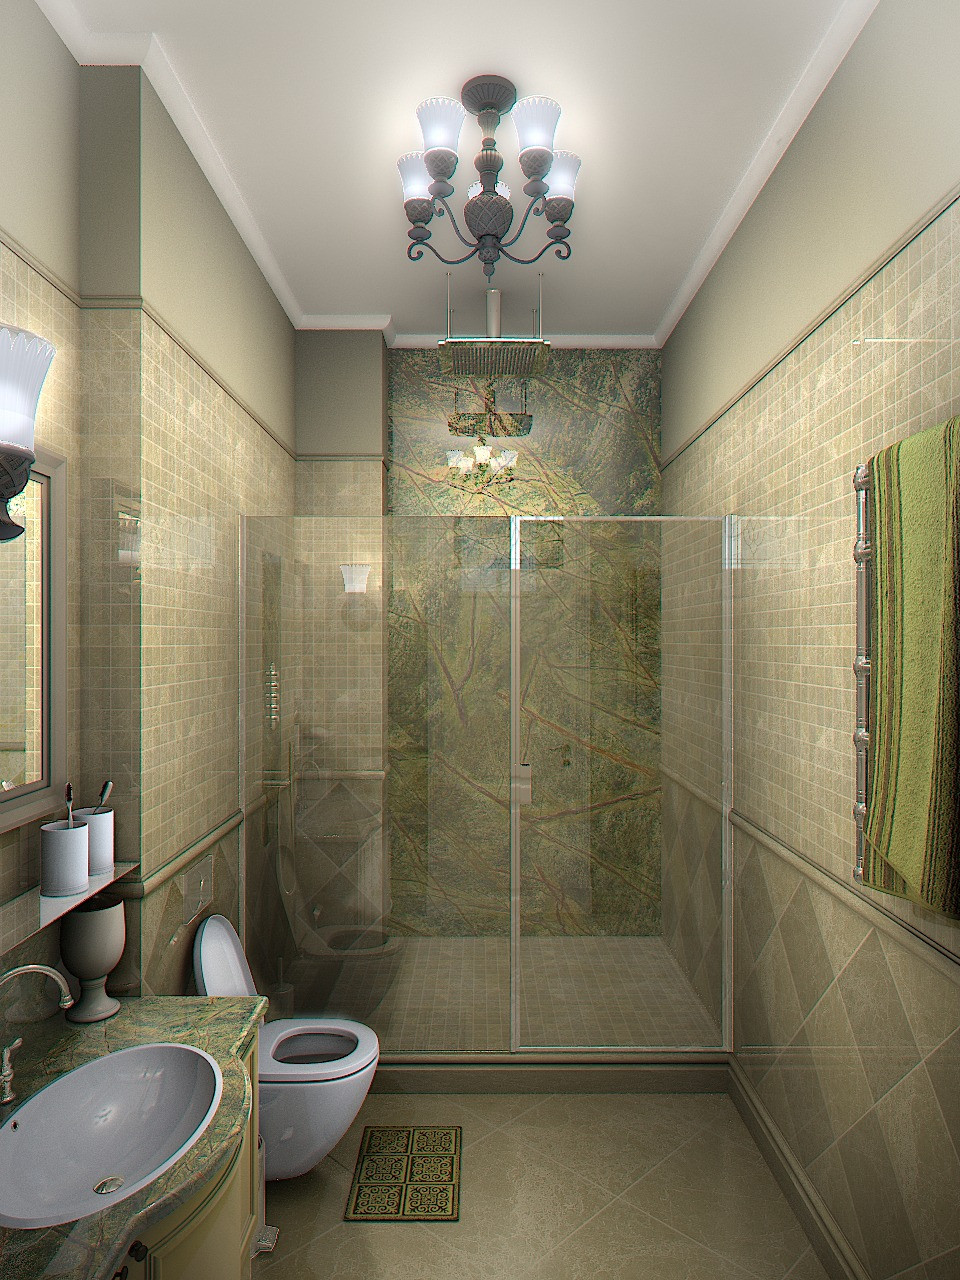 Sample 3D rendering for the bathroom